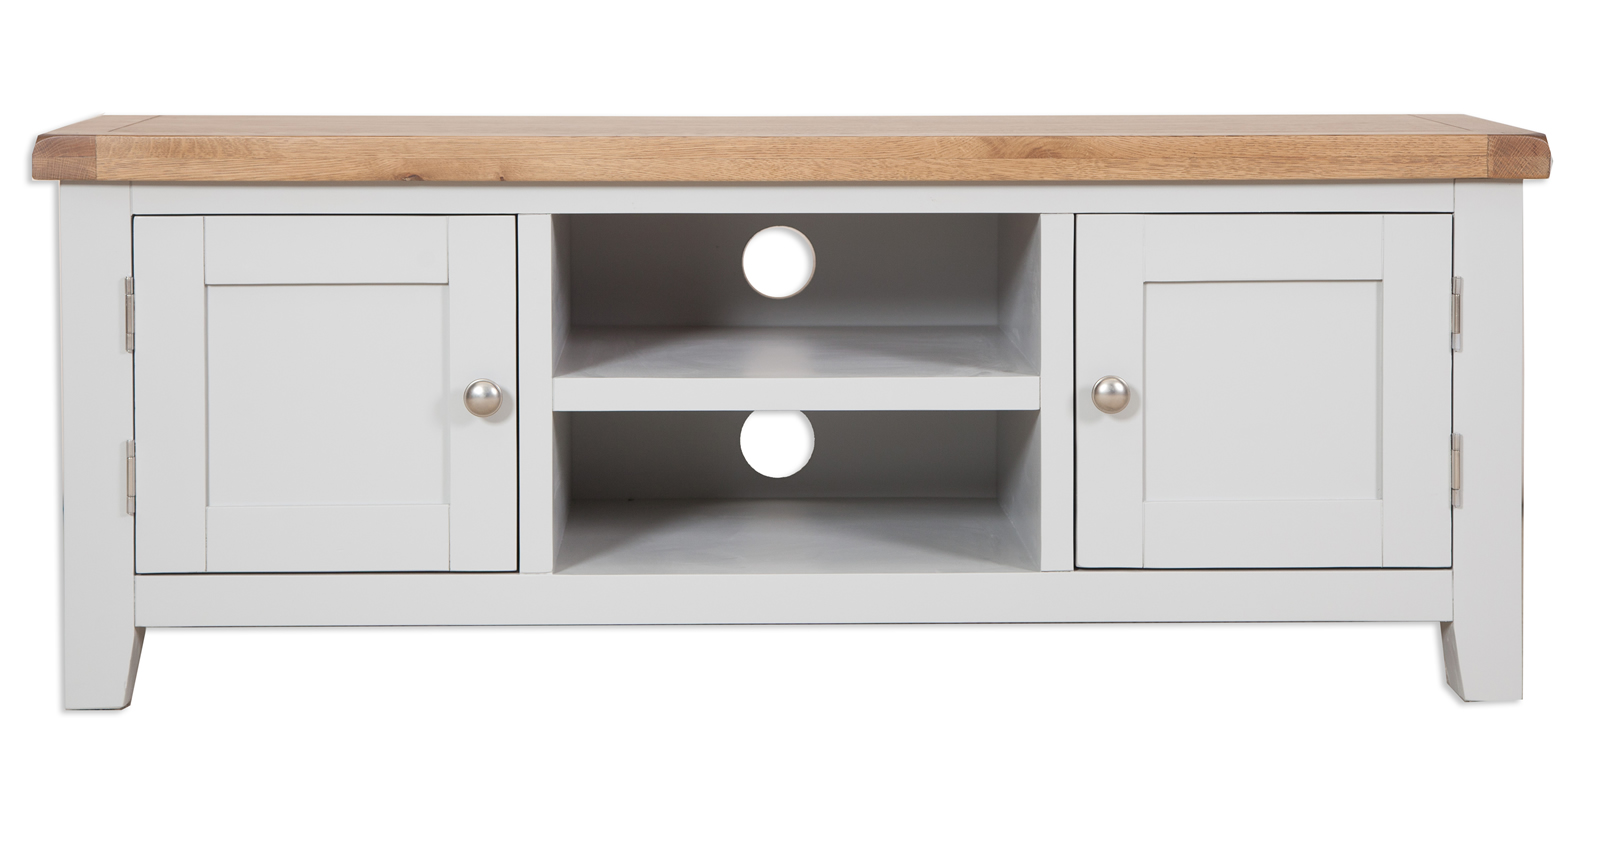 Melbourne French Grey Plasma Tv Cabinet Home Max Furniture